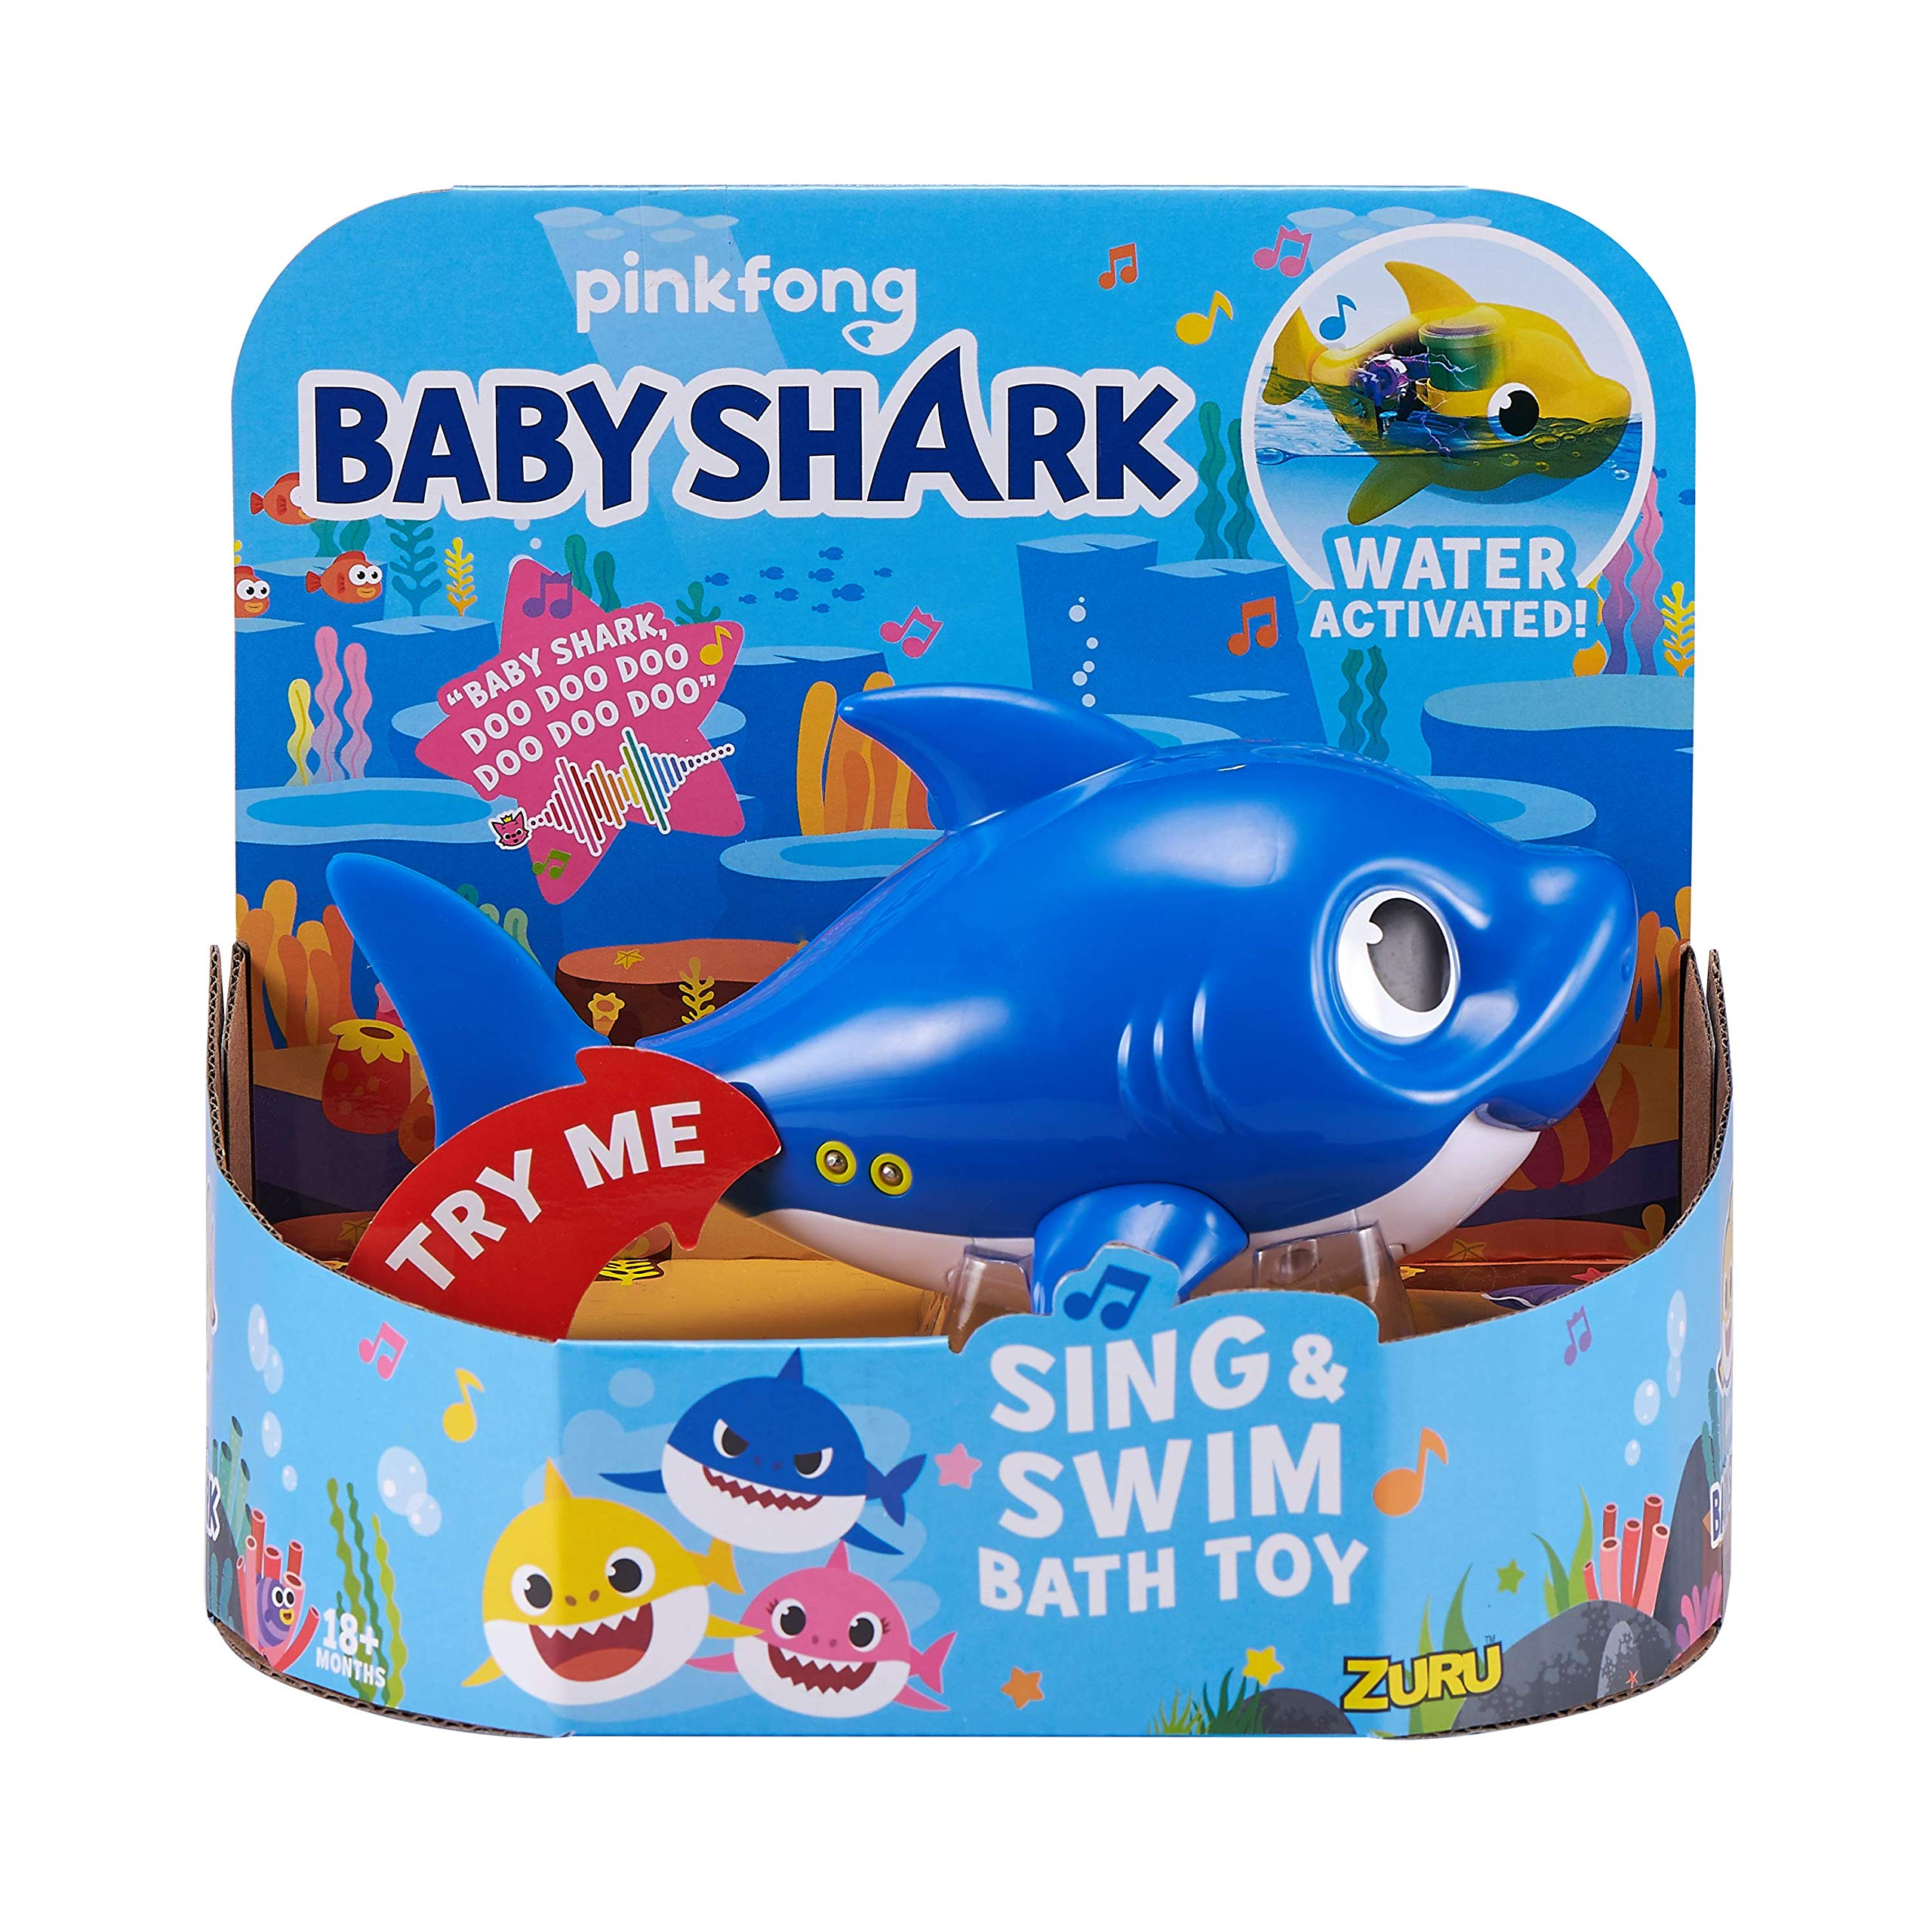 Robo Alive Junior Baby Shark Battery-Powered Sing and Swim Bath Toy by ZURU - Daddy Shark (Blue) by Robo Alive Junior (Image #1)